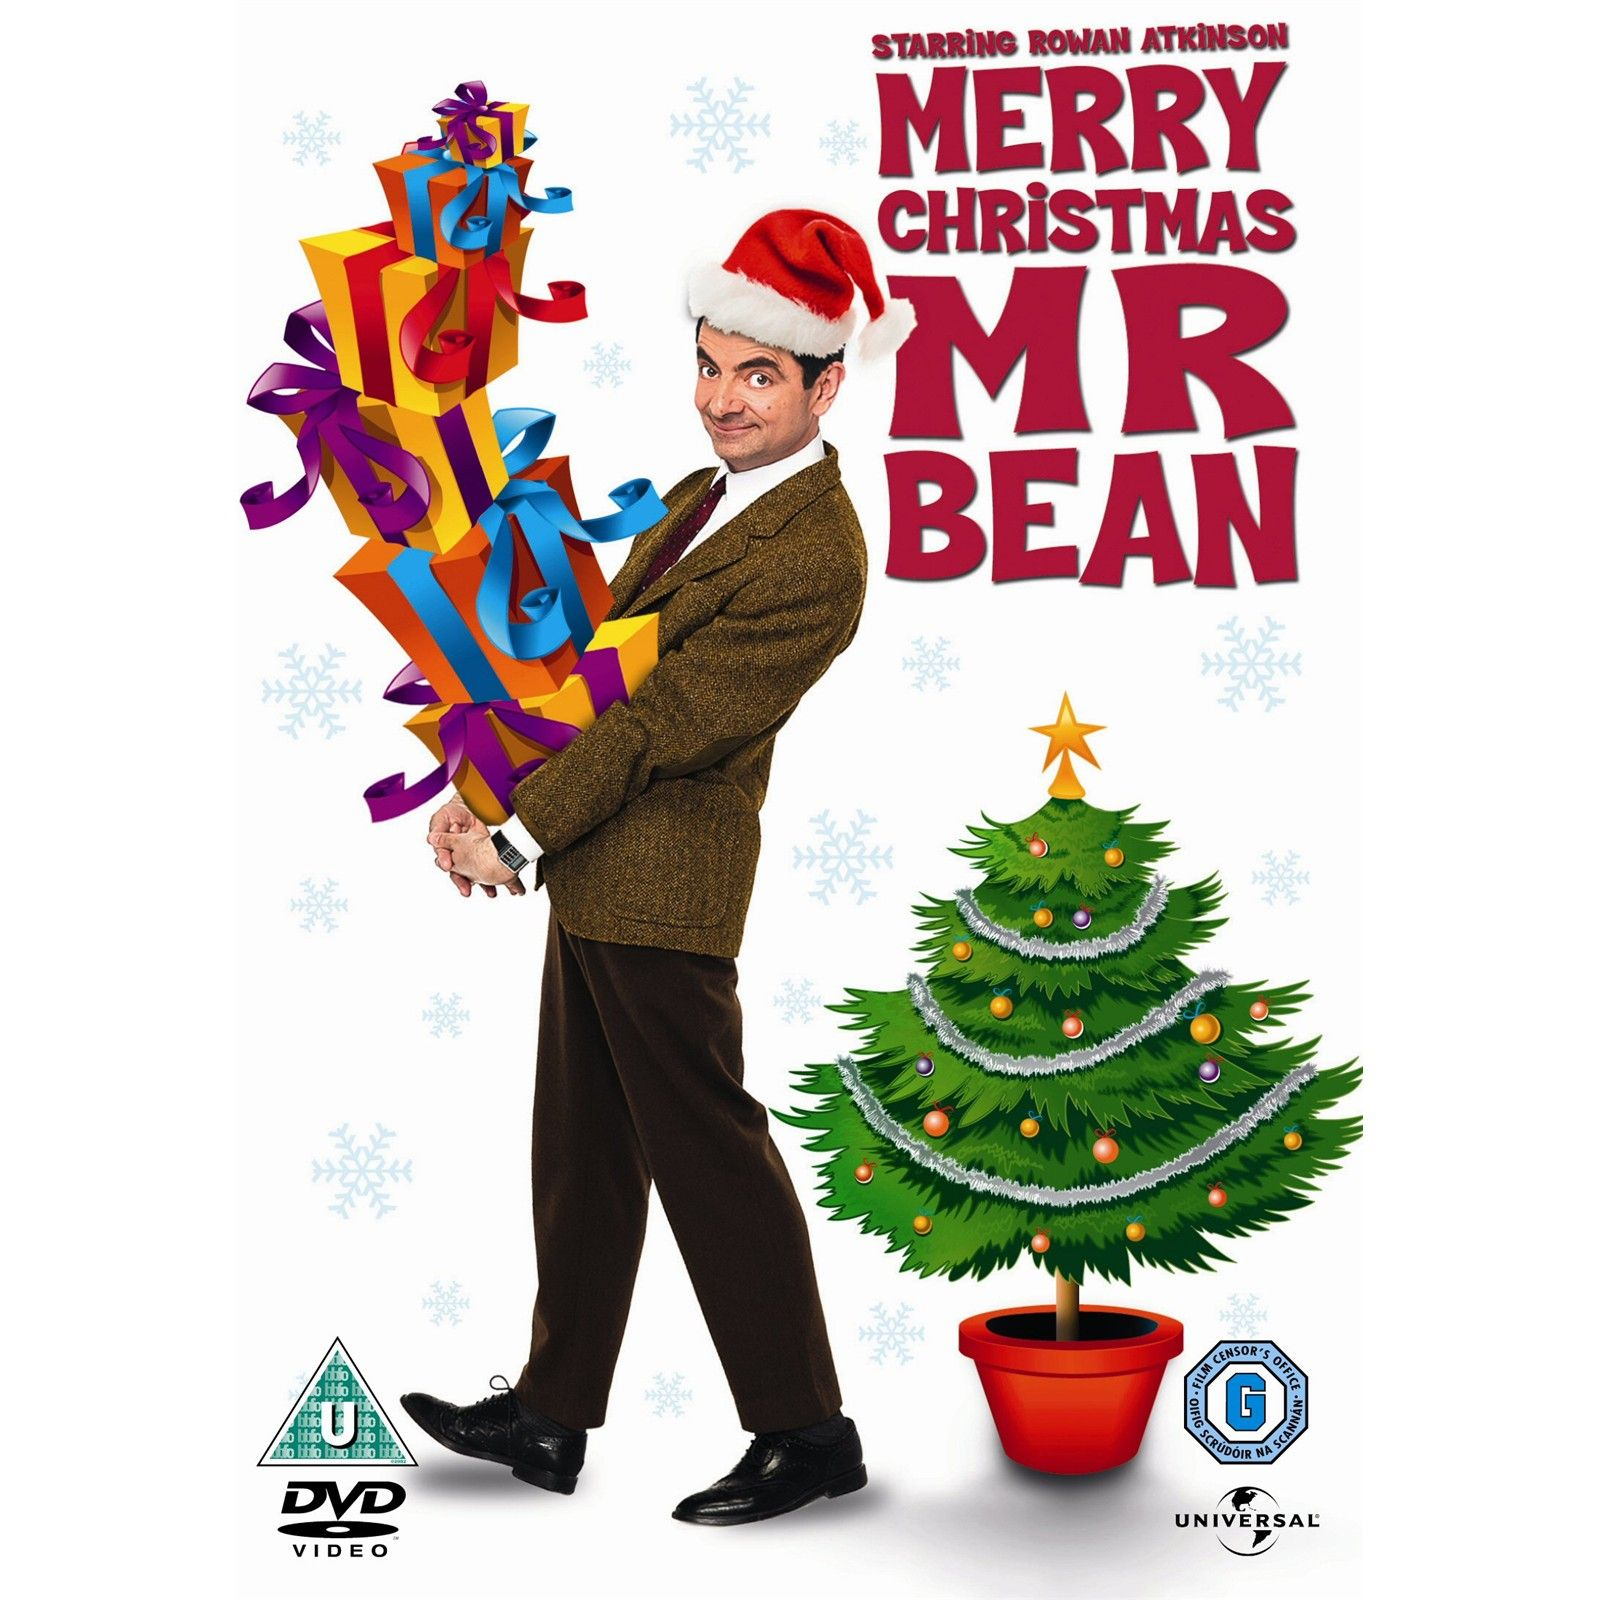 mr christmas movie images helplessly hoping mr bean christmas cartoon mr bean christmas socks - Mr Christmas Tree